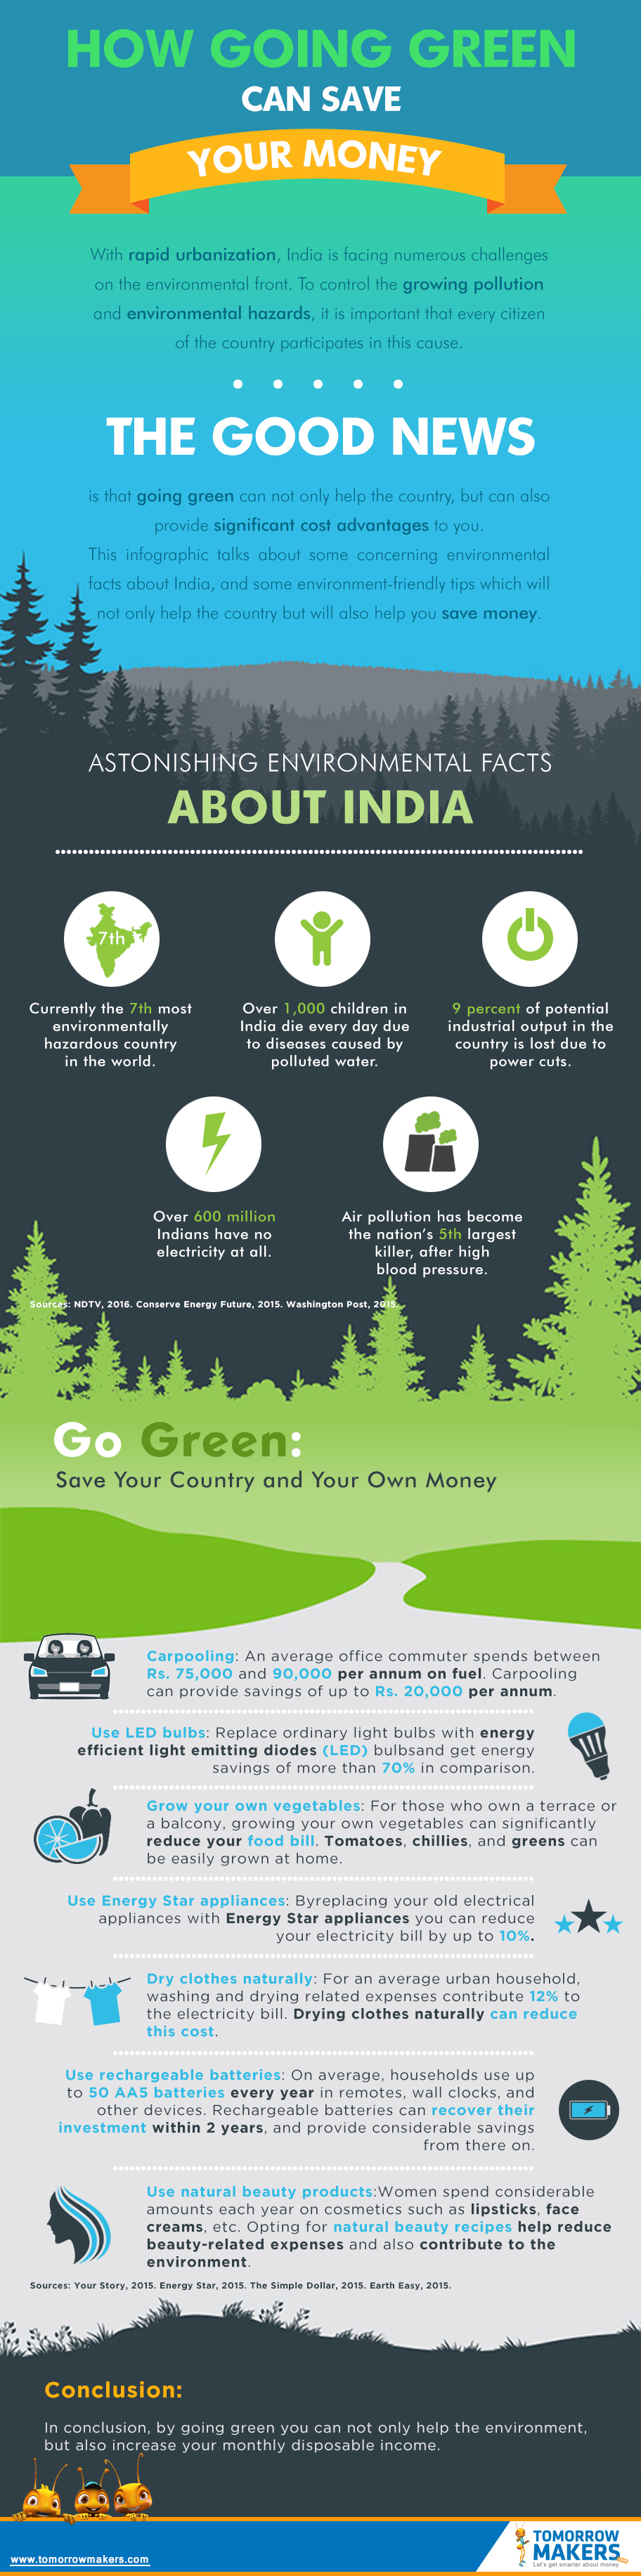 Going green can help you save money